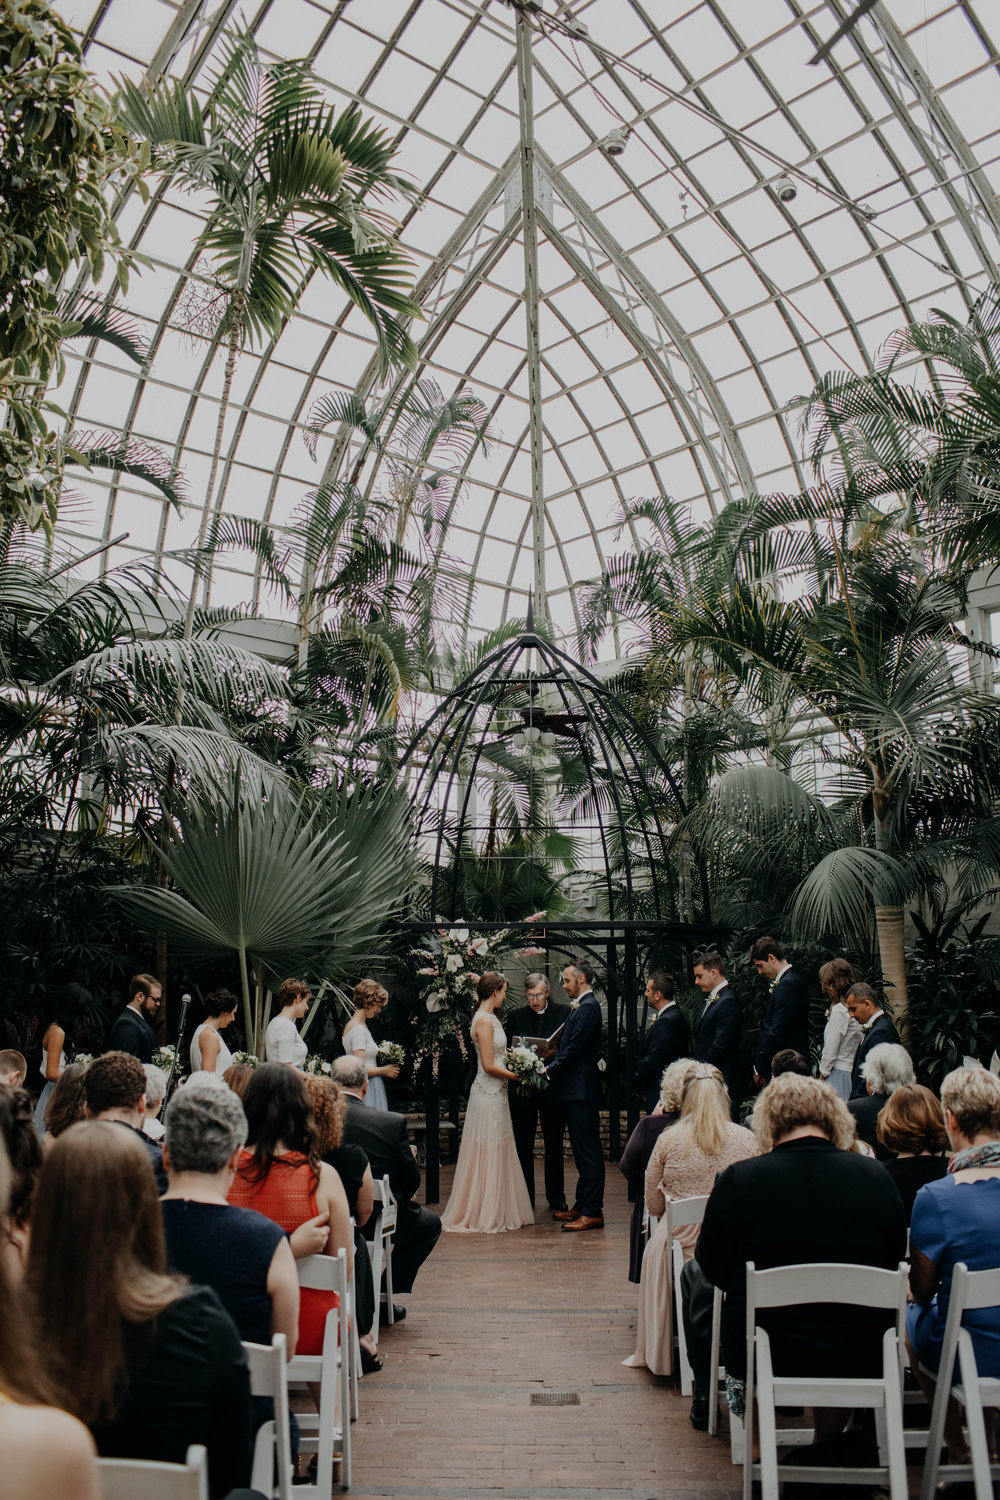 franklin park conservatory wedding columbus ohio wedding photographer grace e jones photography262.jpg